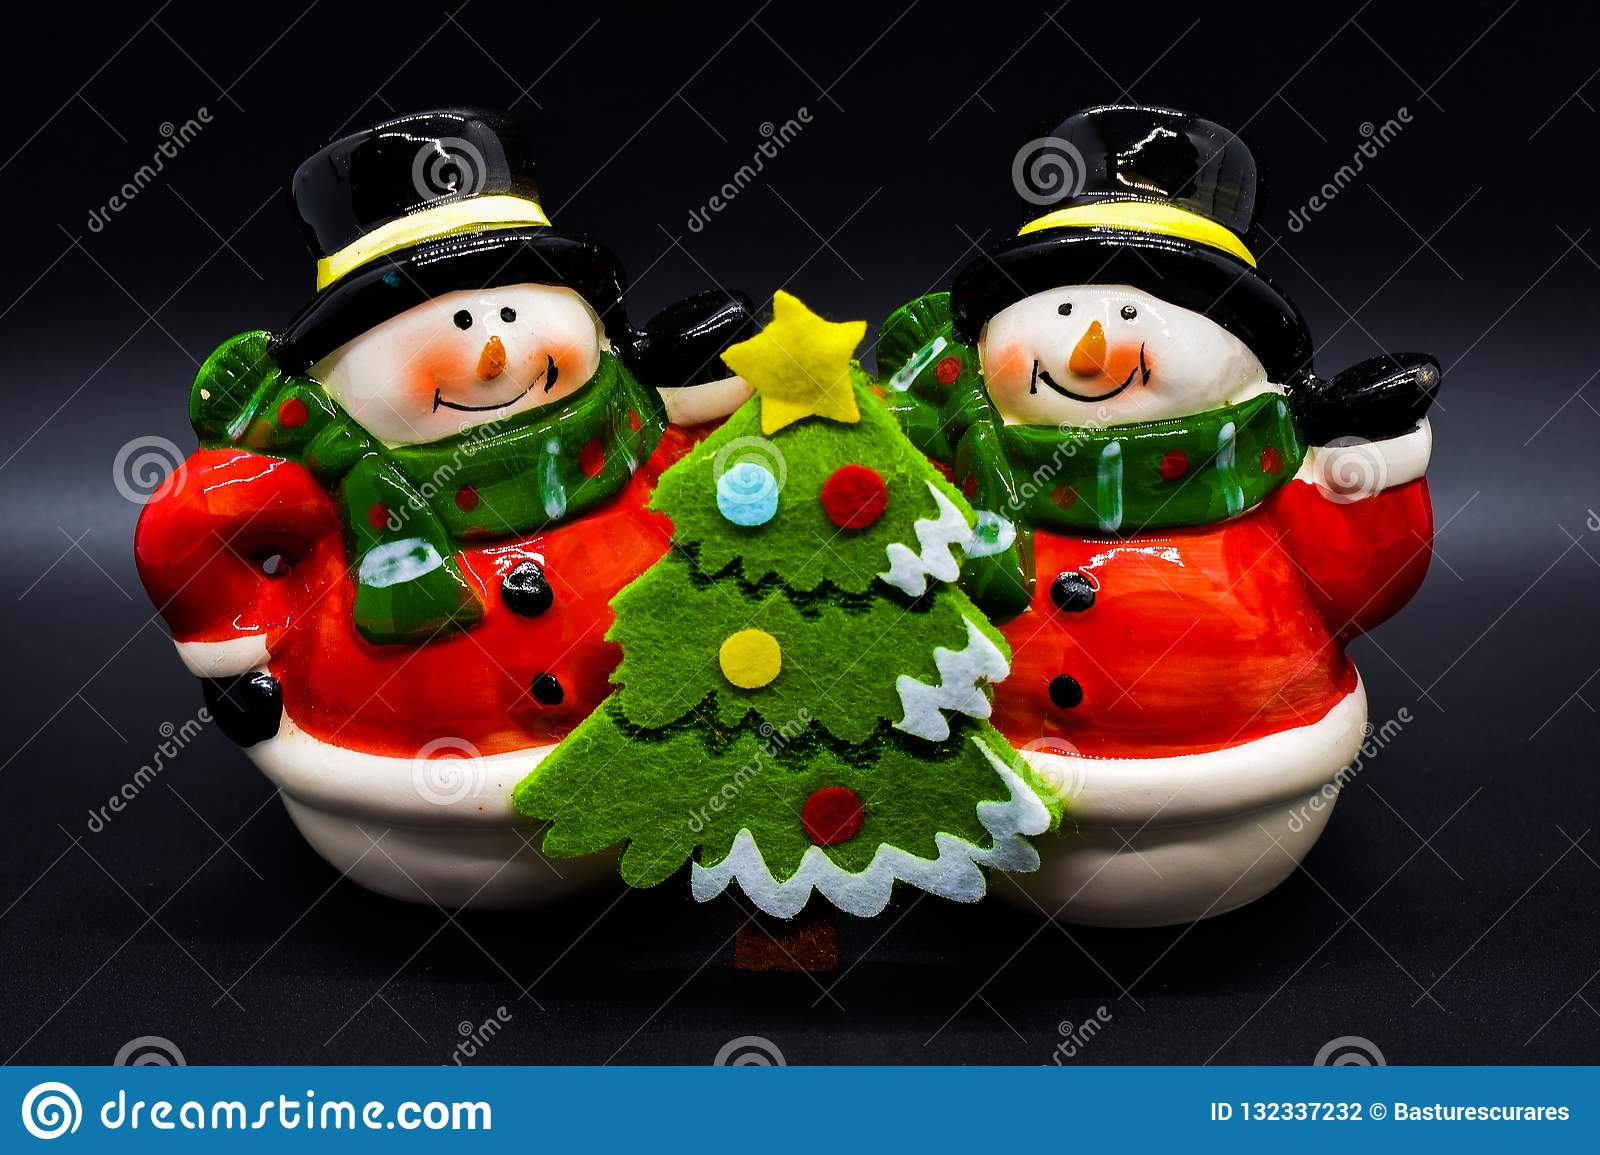 Handmade snowmen figurines isolated on black background. Christmas decoration.